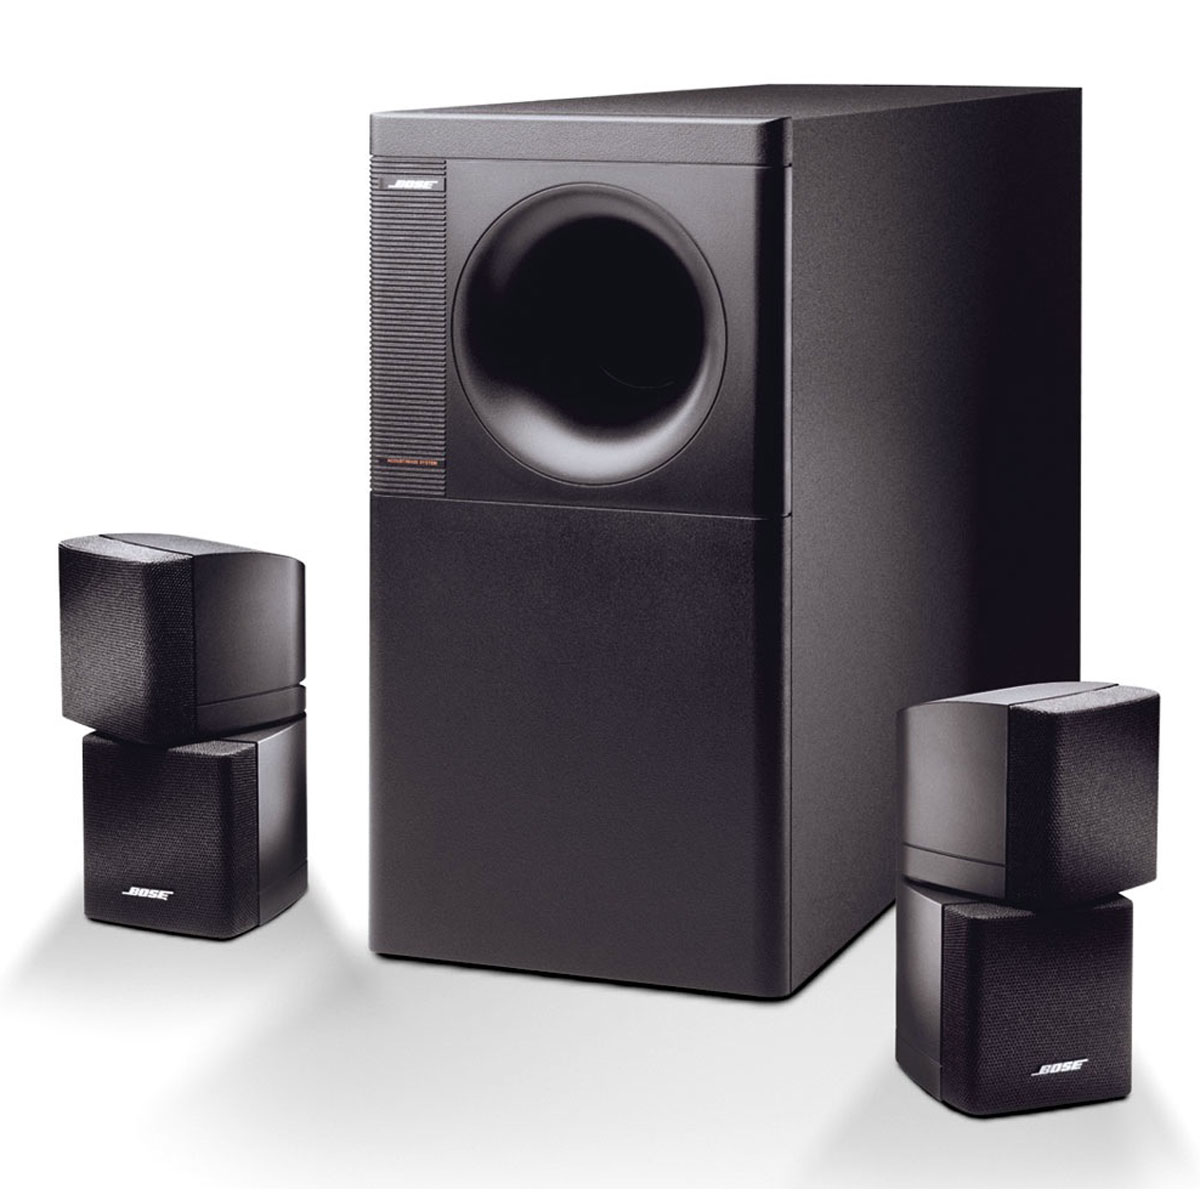 bose acoustimass 5 s rie iii noir enceintes hifi bose sur. Black Bedroom Furniture Sets. Home Design Ideas